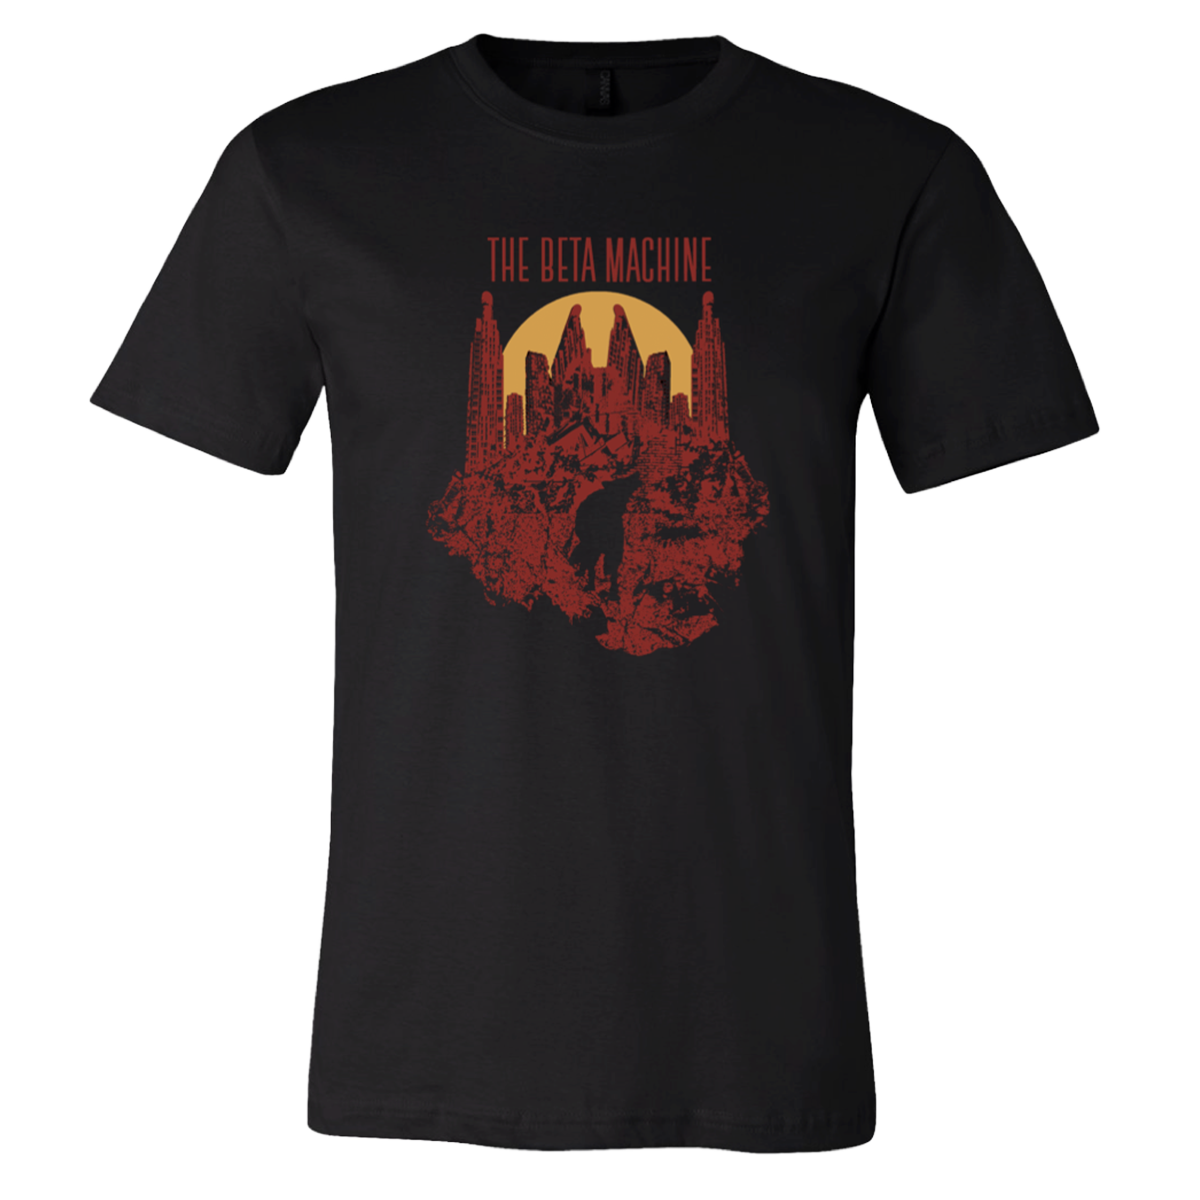 TBM - Intruder Album Cover T-Shirt (Mens & Ladies Available)